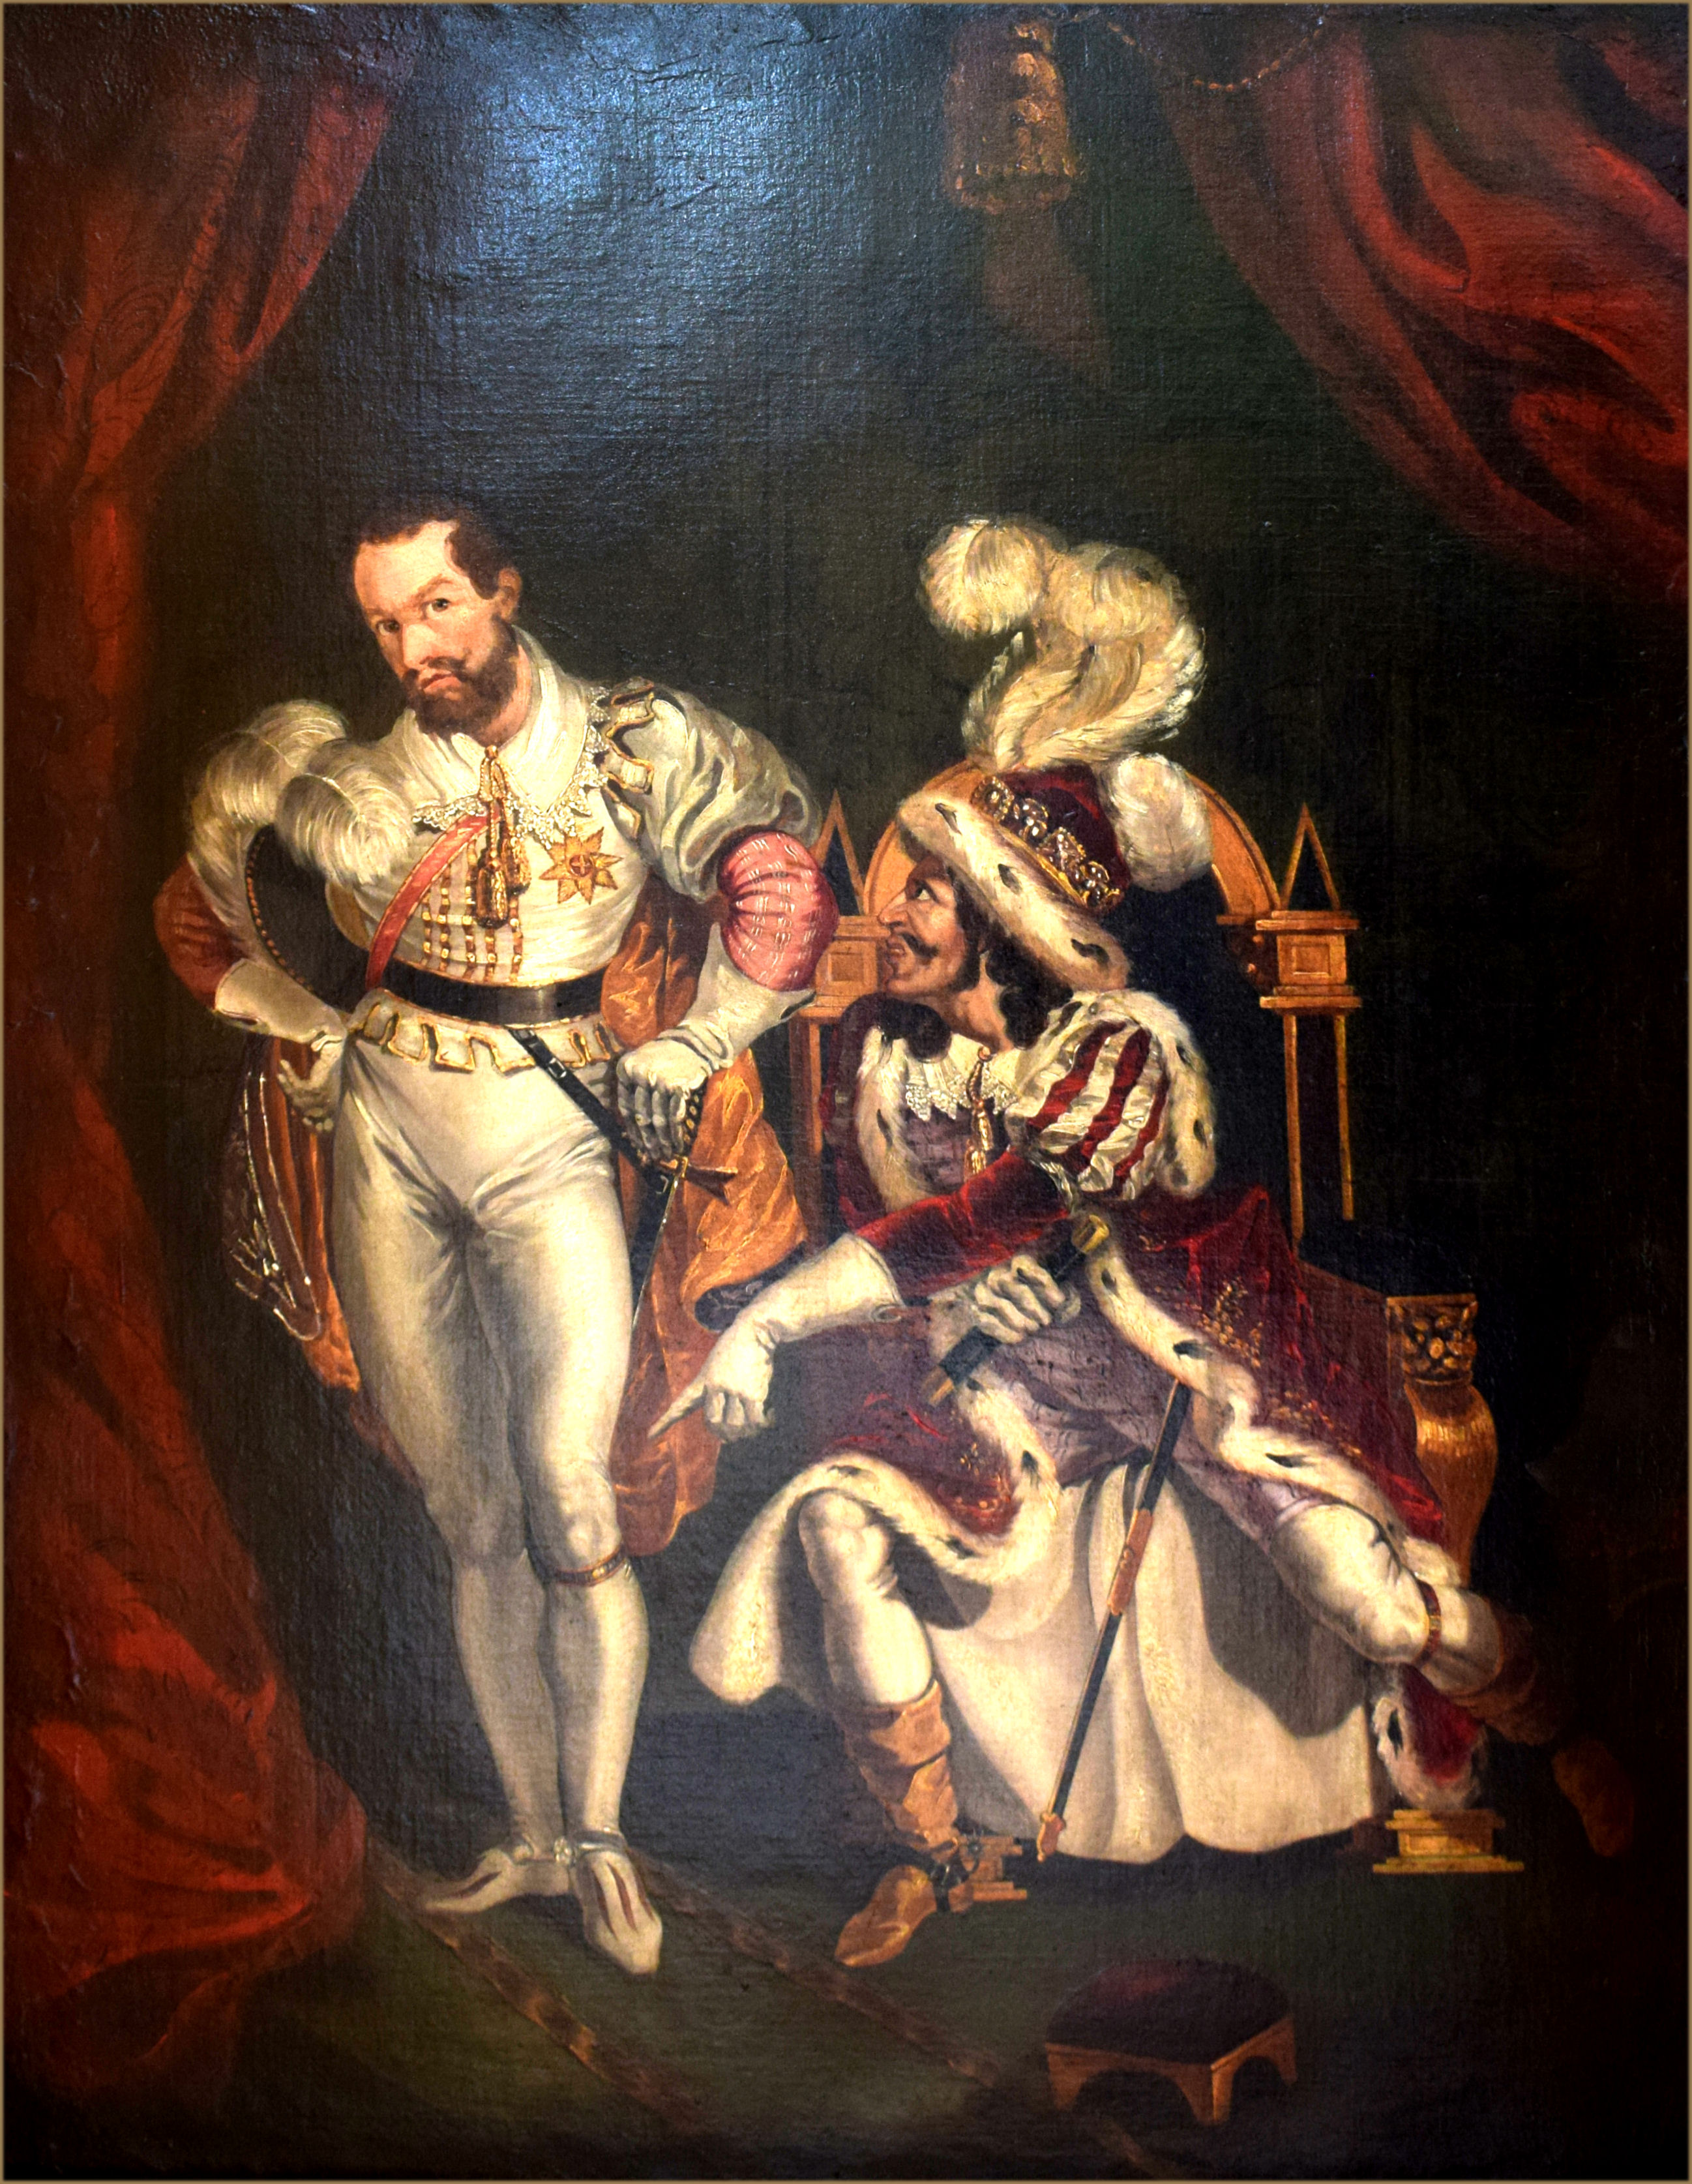 Portrait of Edmund Kean 1787-1833 as Richard III with the